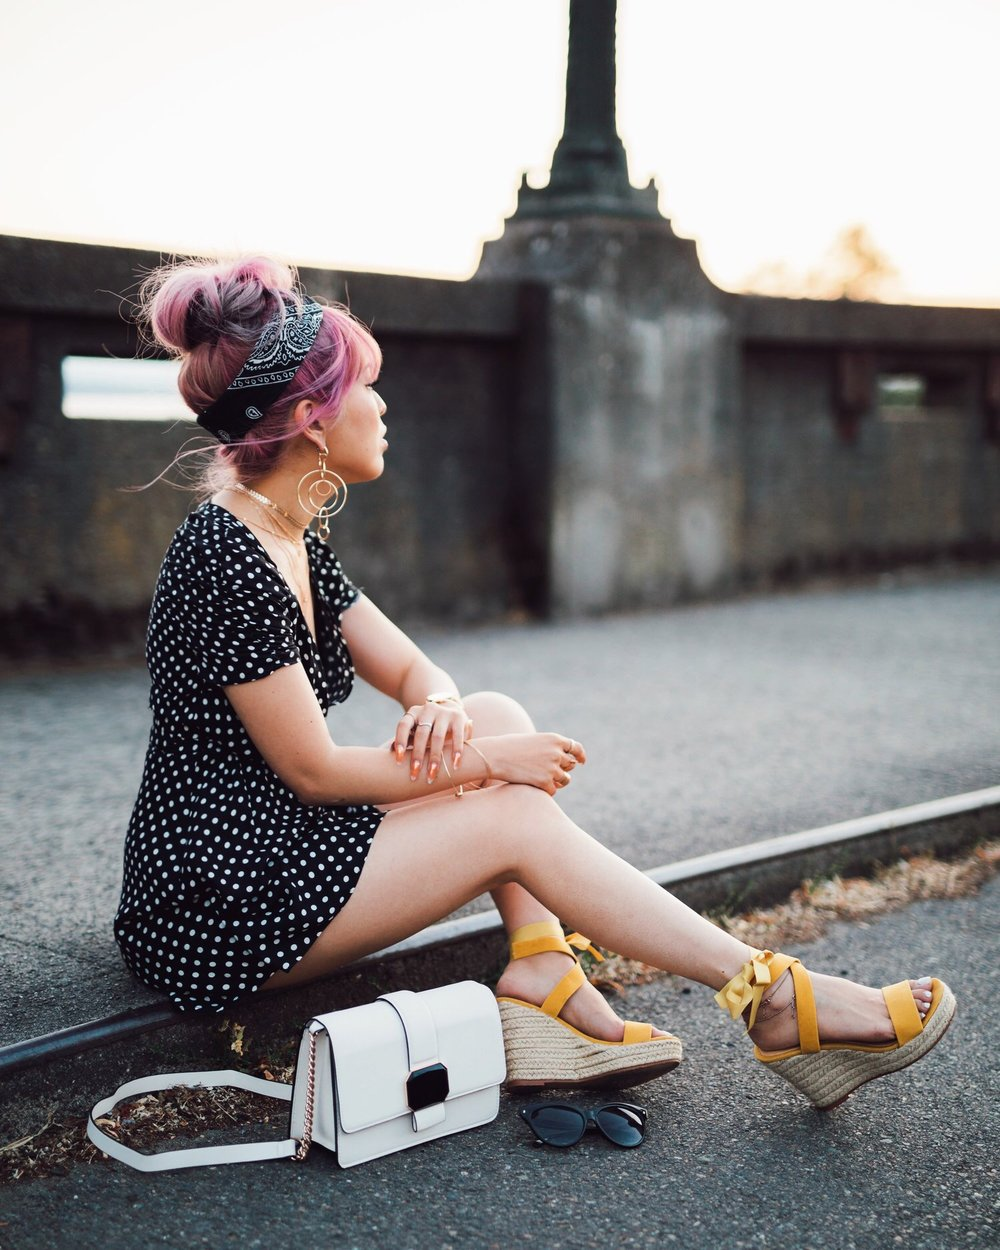 ASOS Polkadot Romper_Urban Outfitter Bandana_Zara Statement Earrings_H&M White Crossbody Bag_ShoeDazzle Yellow Lace up Wedge Sandals_Aikas Love Closet_Seattle Fashion Style Blogger_Japanese_Pink Hair_Street Snap_Summer Style